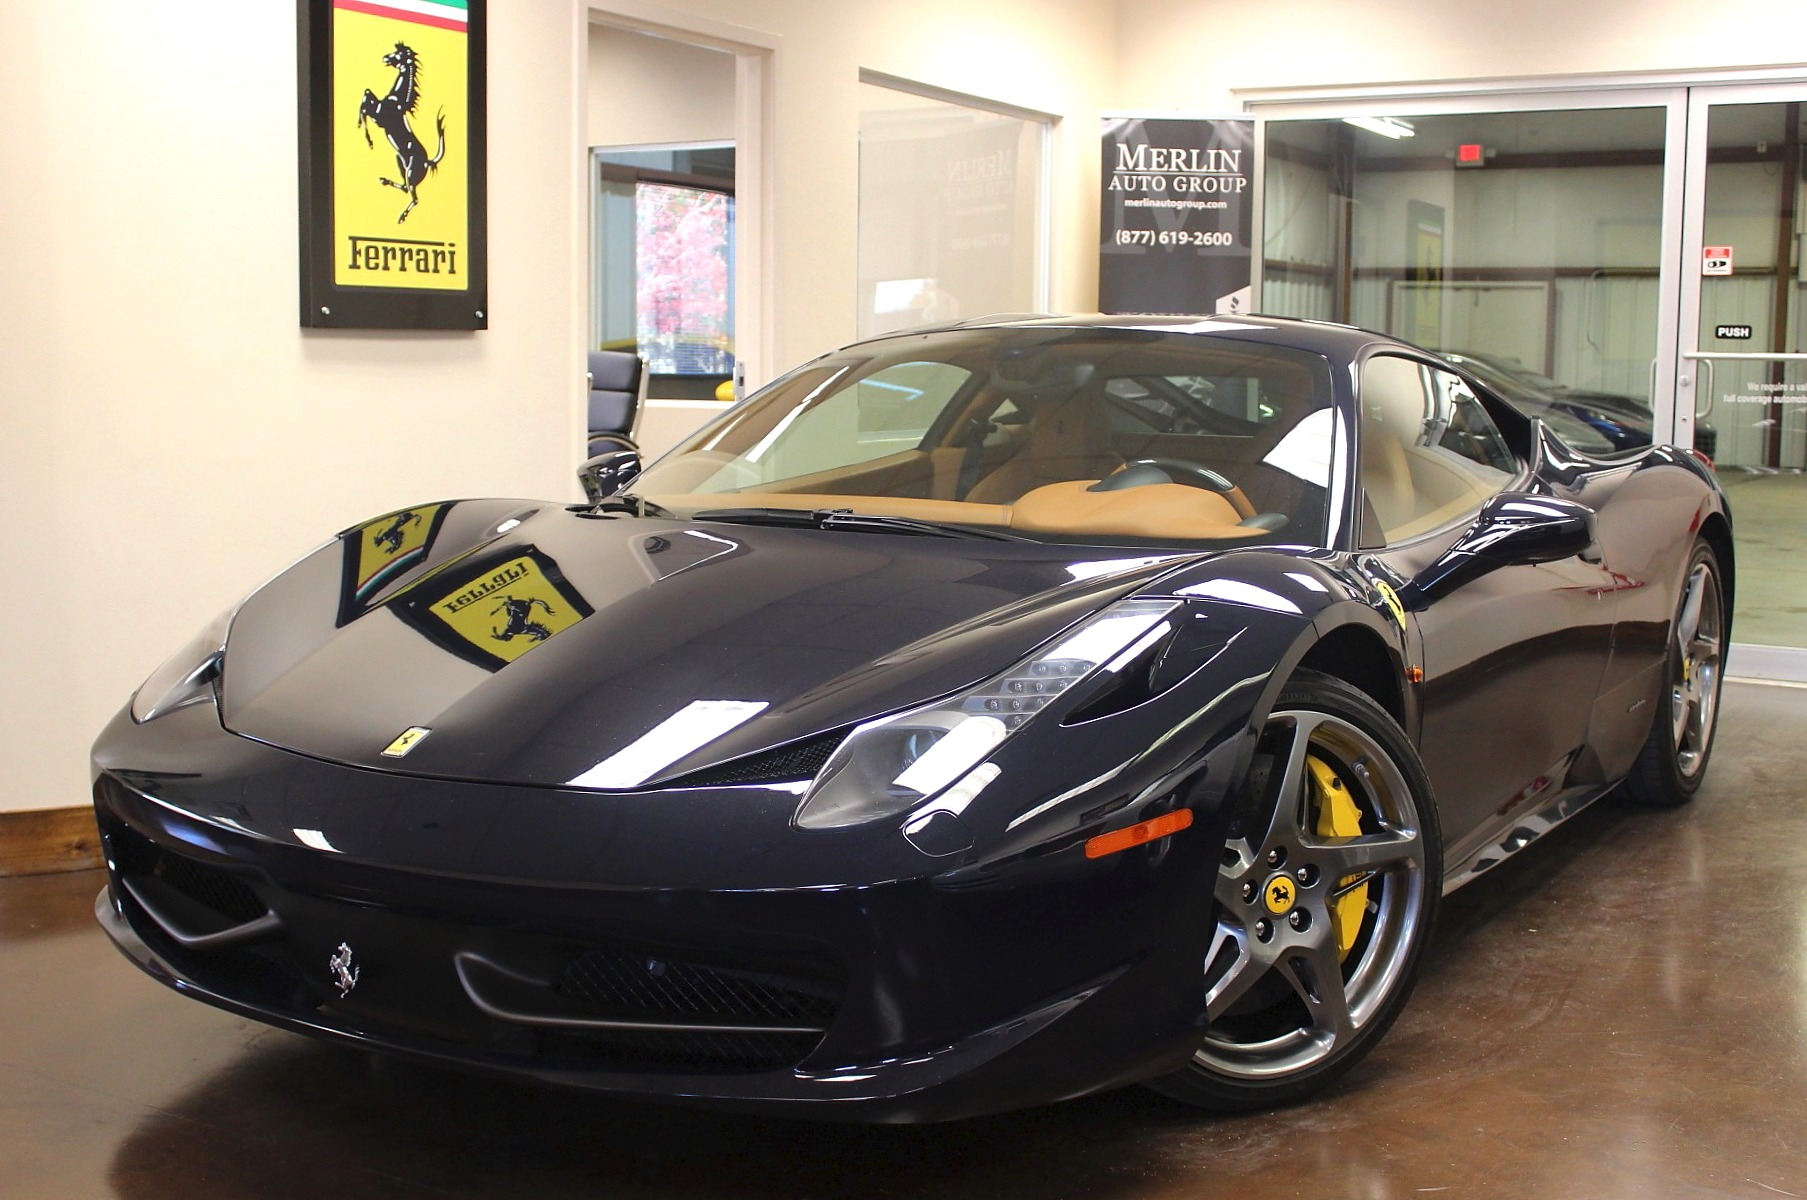 Used 2013 ferrari 458 stock p3305 ultra luxury car from merlin 2013 ferrari 458 italia vanachro Choice Image